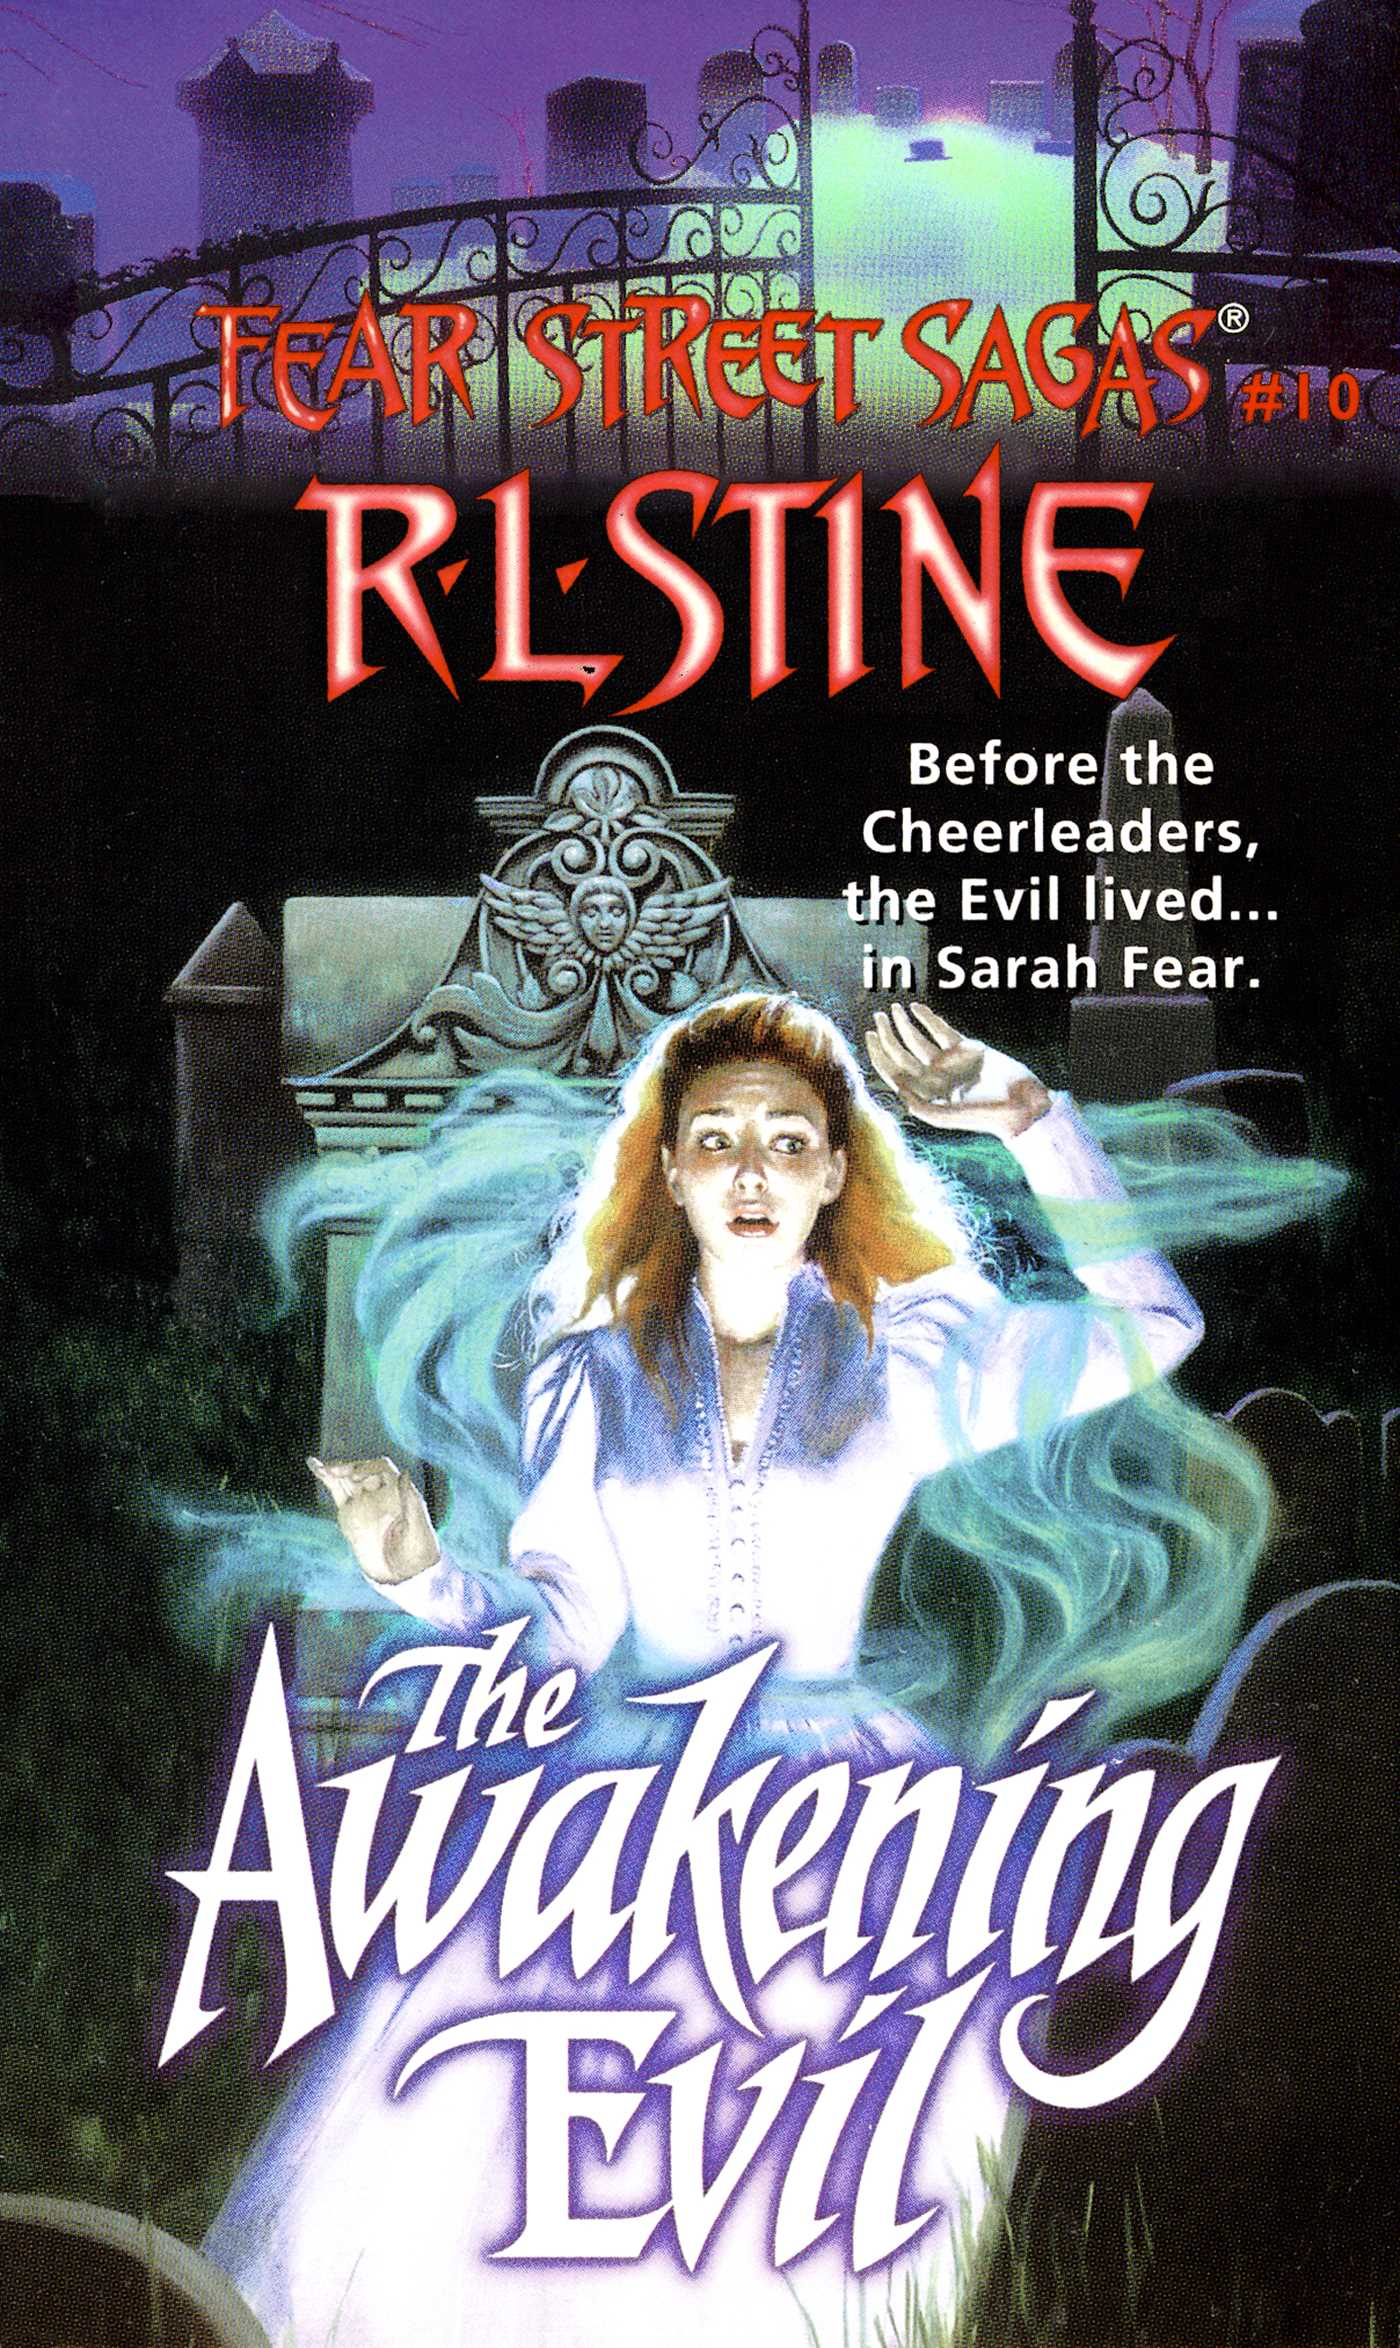 a literary analysis of a story fear street by r l stine Stine book from his fear street series  the horror of rl stine by west in the article, west  the story catcher covers non-fiction and historical.